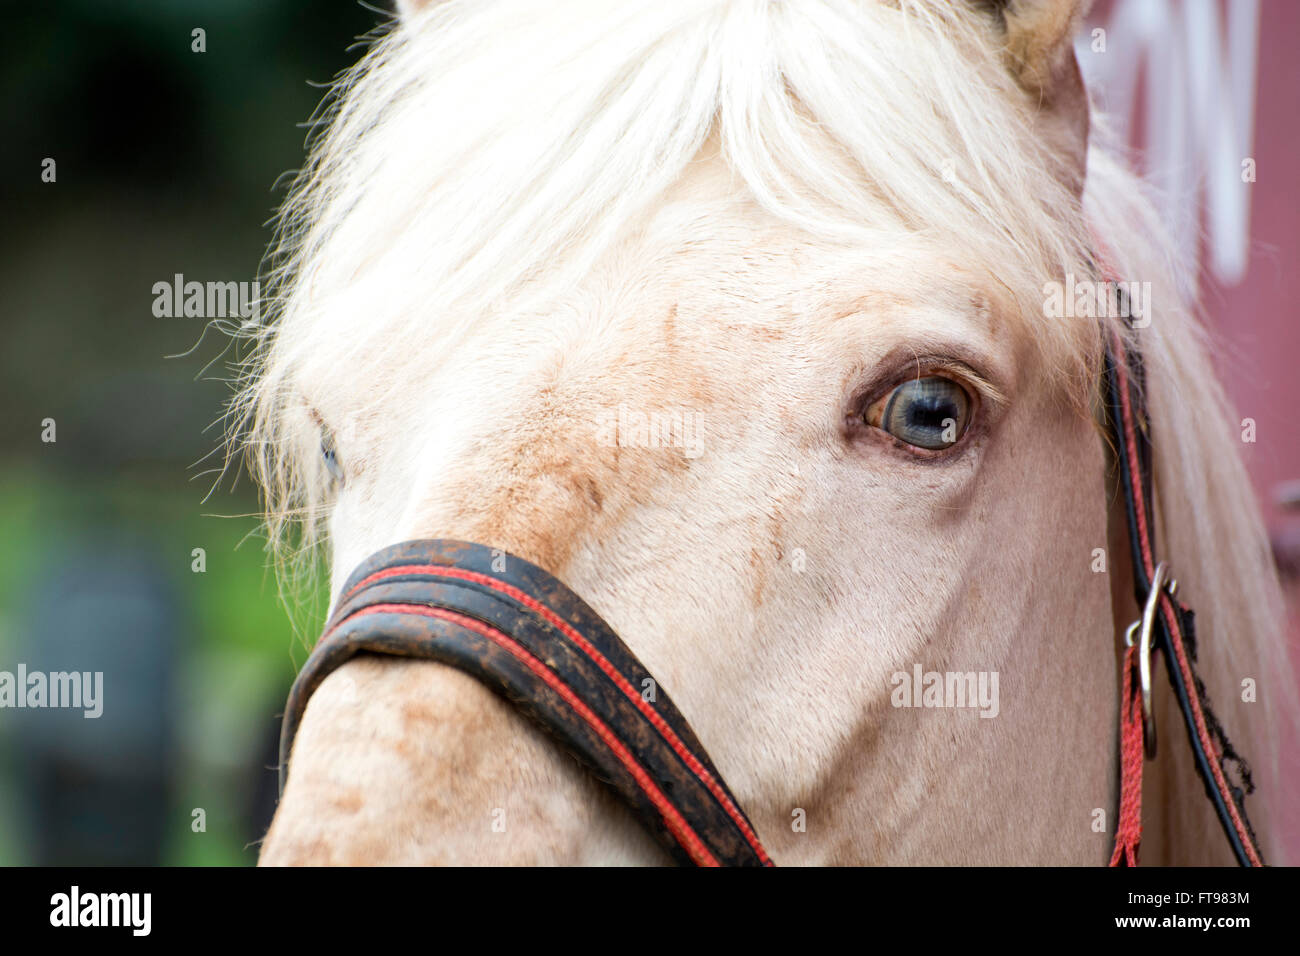 Ribadesella, Spain. 25th March, 2016. A horse after the horse race at Sta. Marina Beach on March 25, 2016 in Ribadesella, - Stock Image